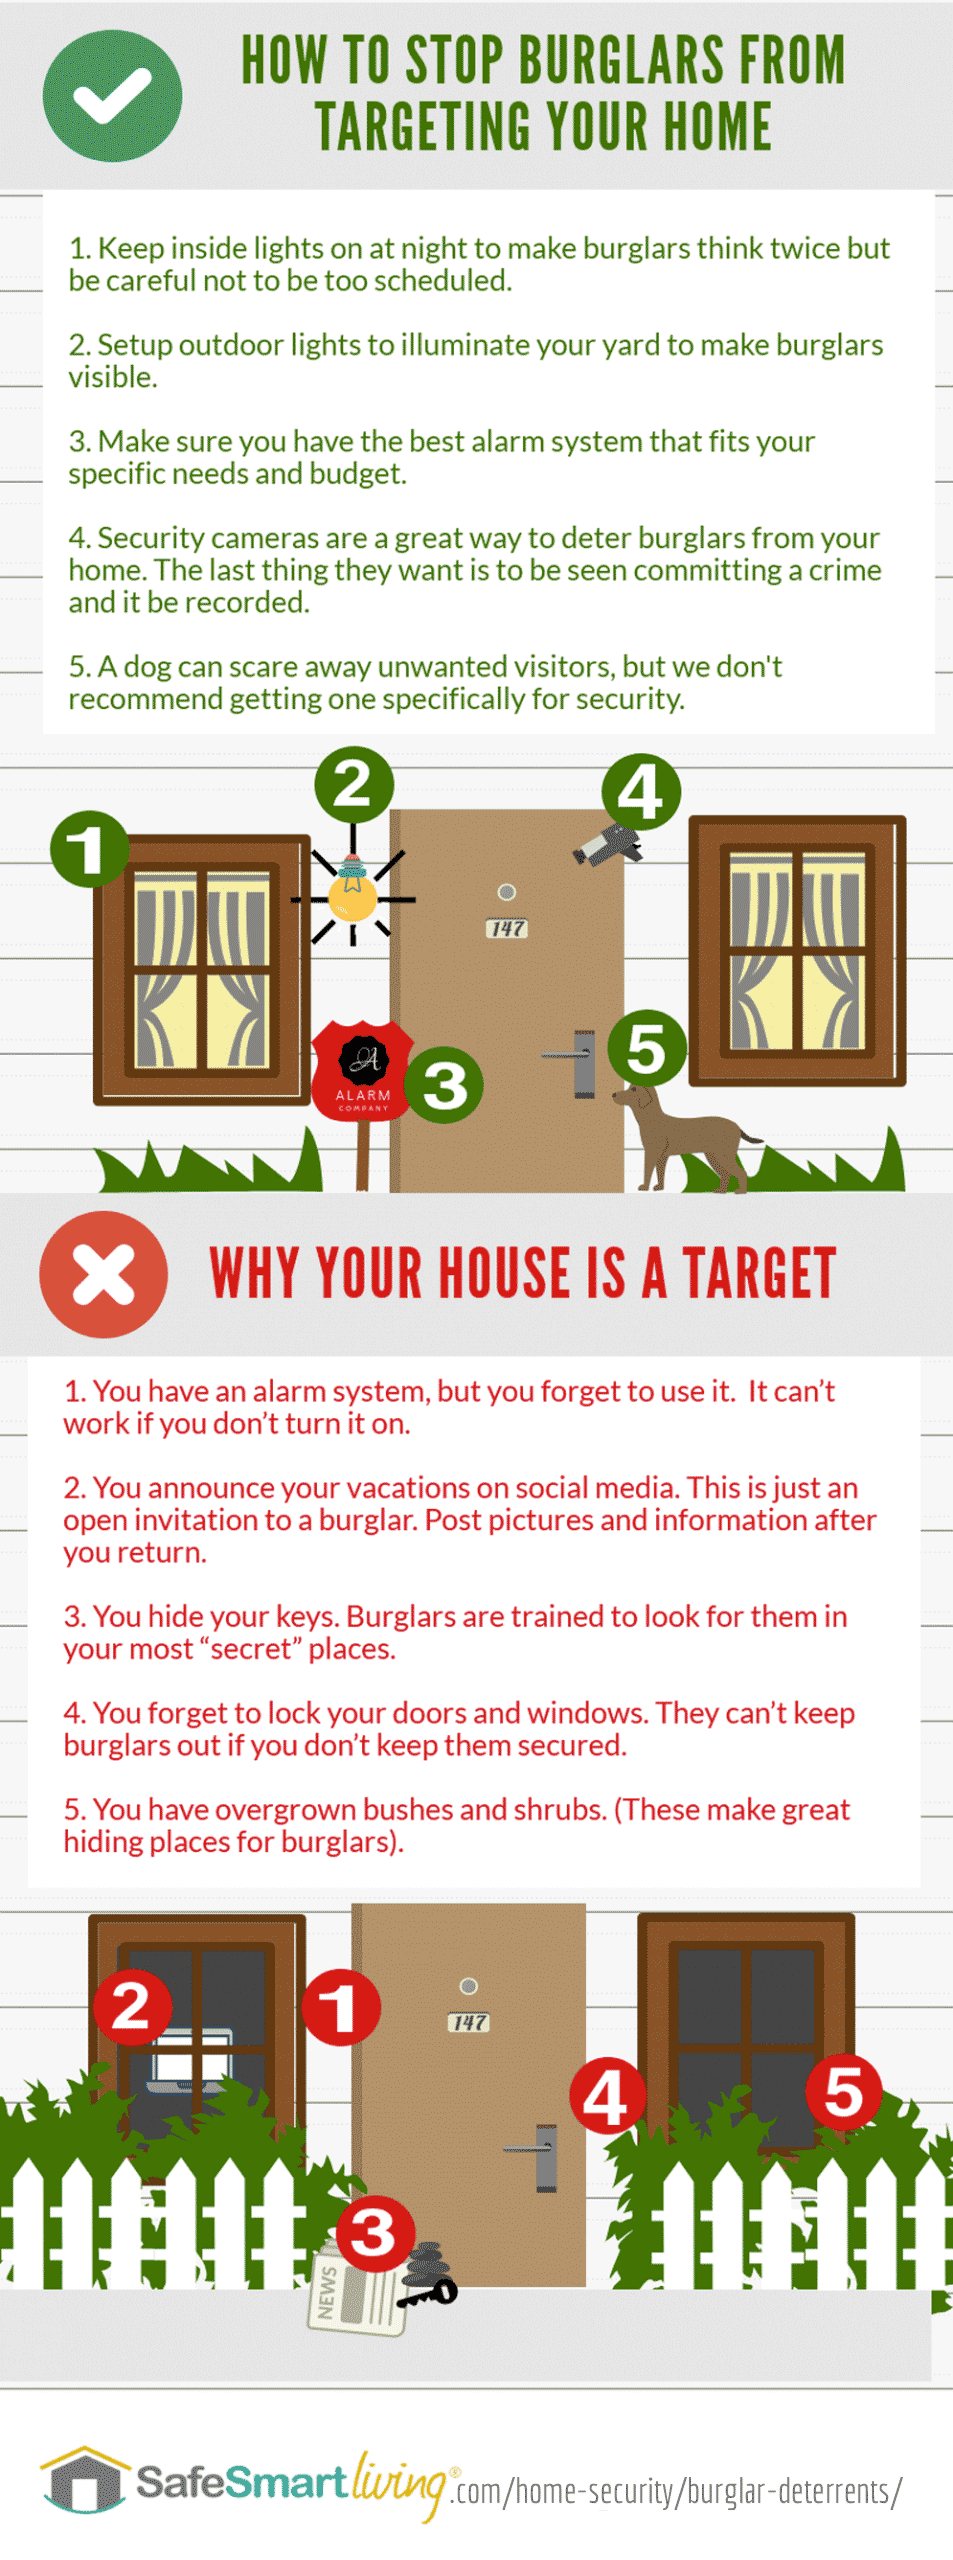 Best Burglar Deterrents Infographic